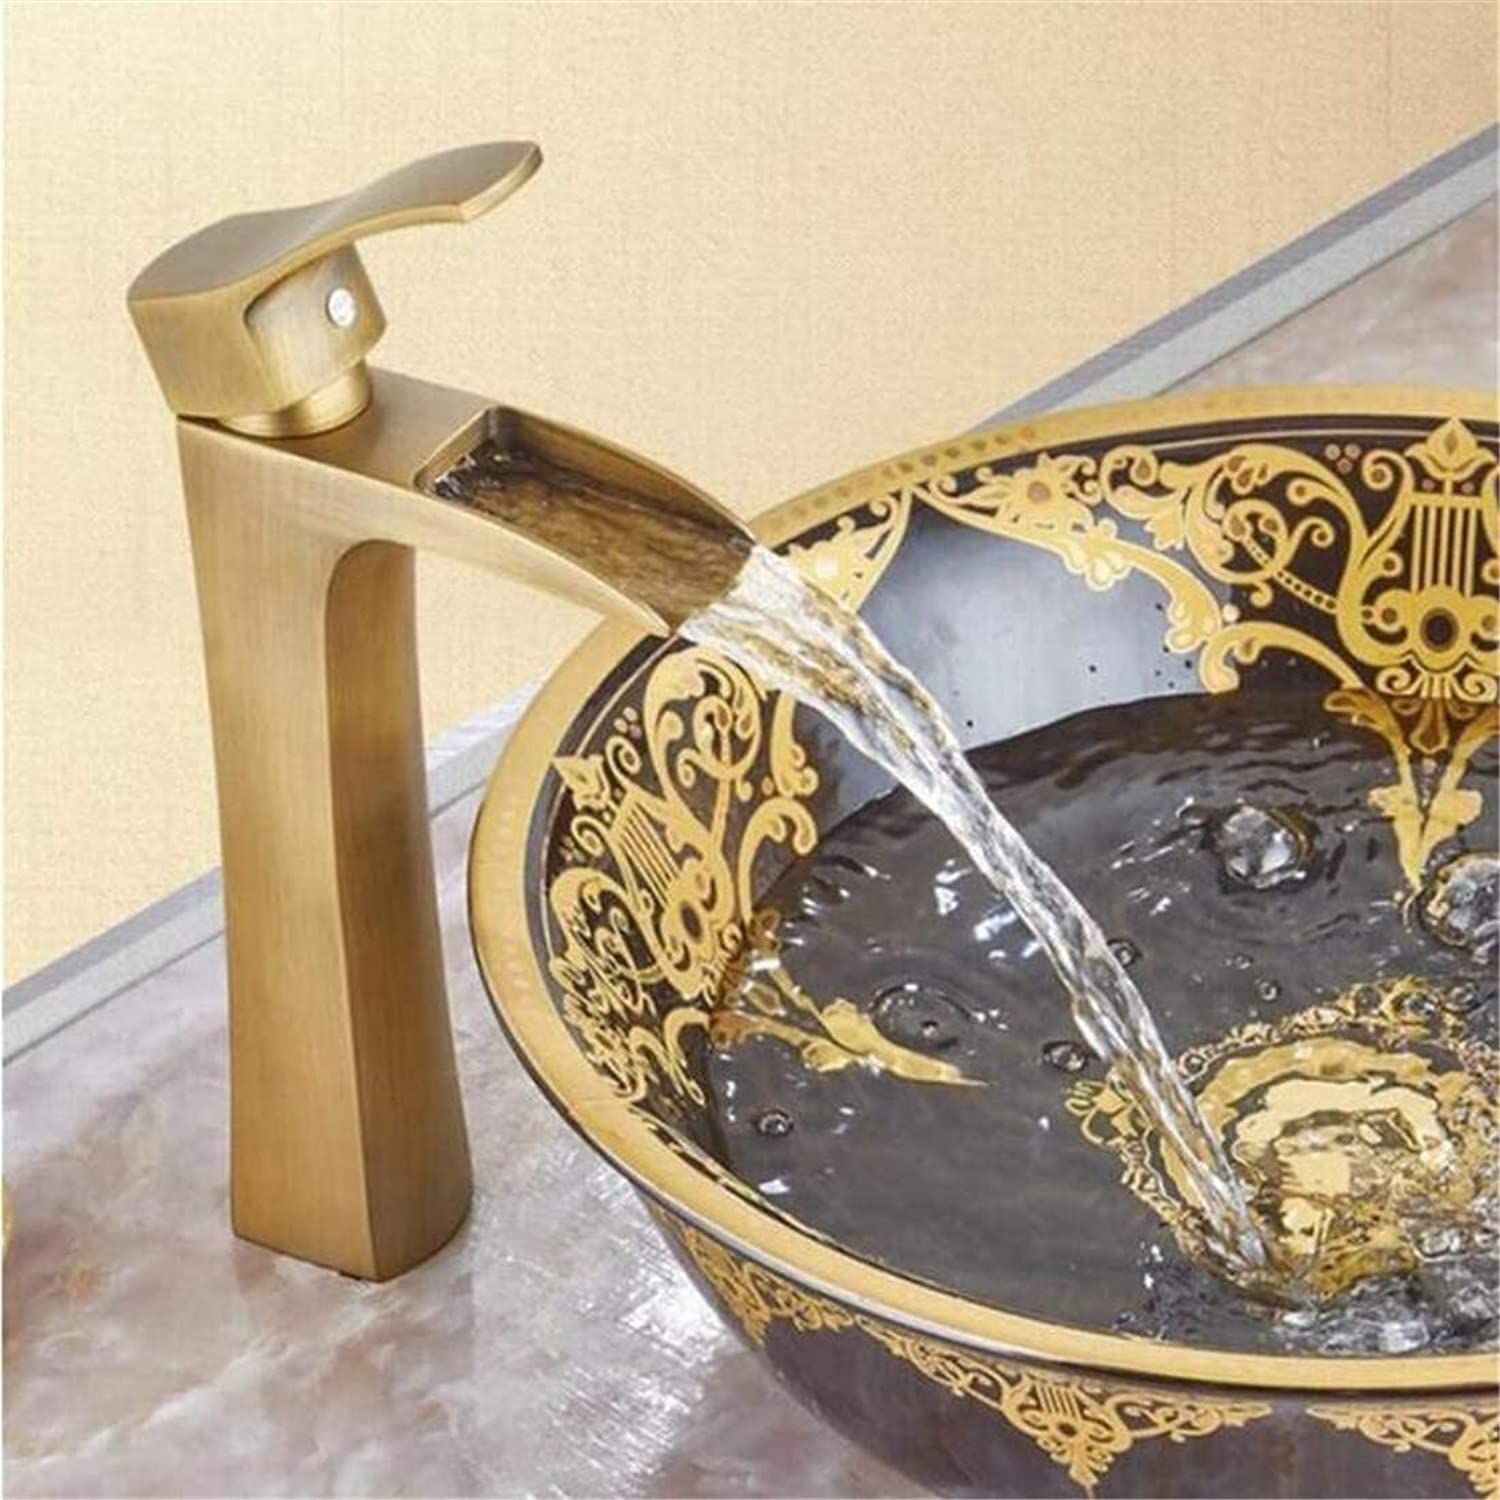 Faucet Luxury Modern Plated Faucet Mixerbathroom Faucet Single Handle Basin Mixer Tap Bath Antique Faucet Brass Sink Water Crane